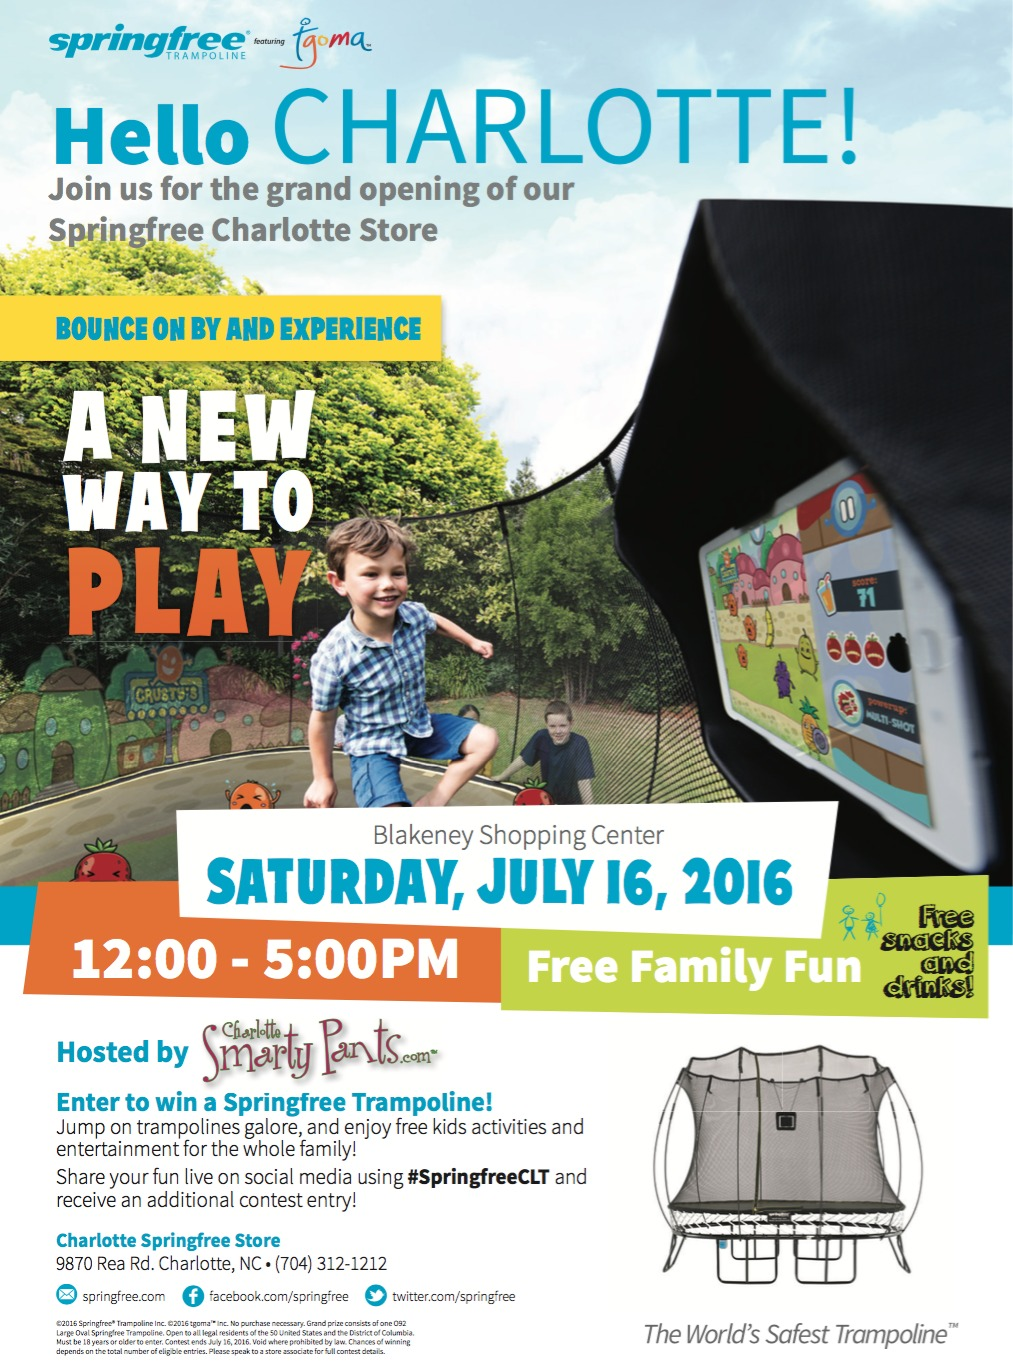 Springfree Trampoline Grand Opening In Charlotte, North Carolina